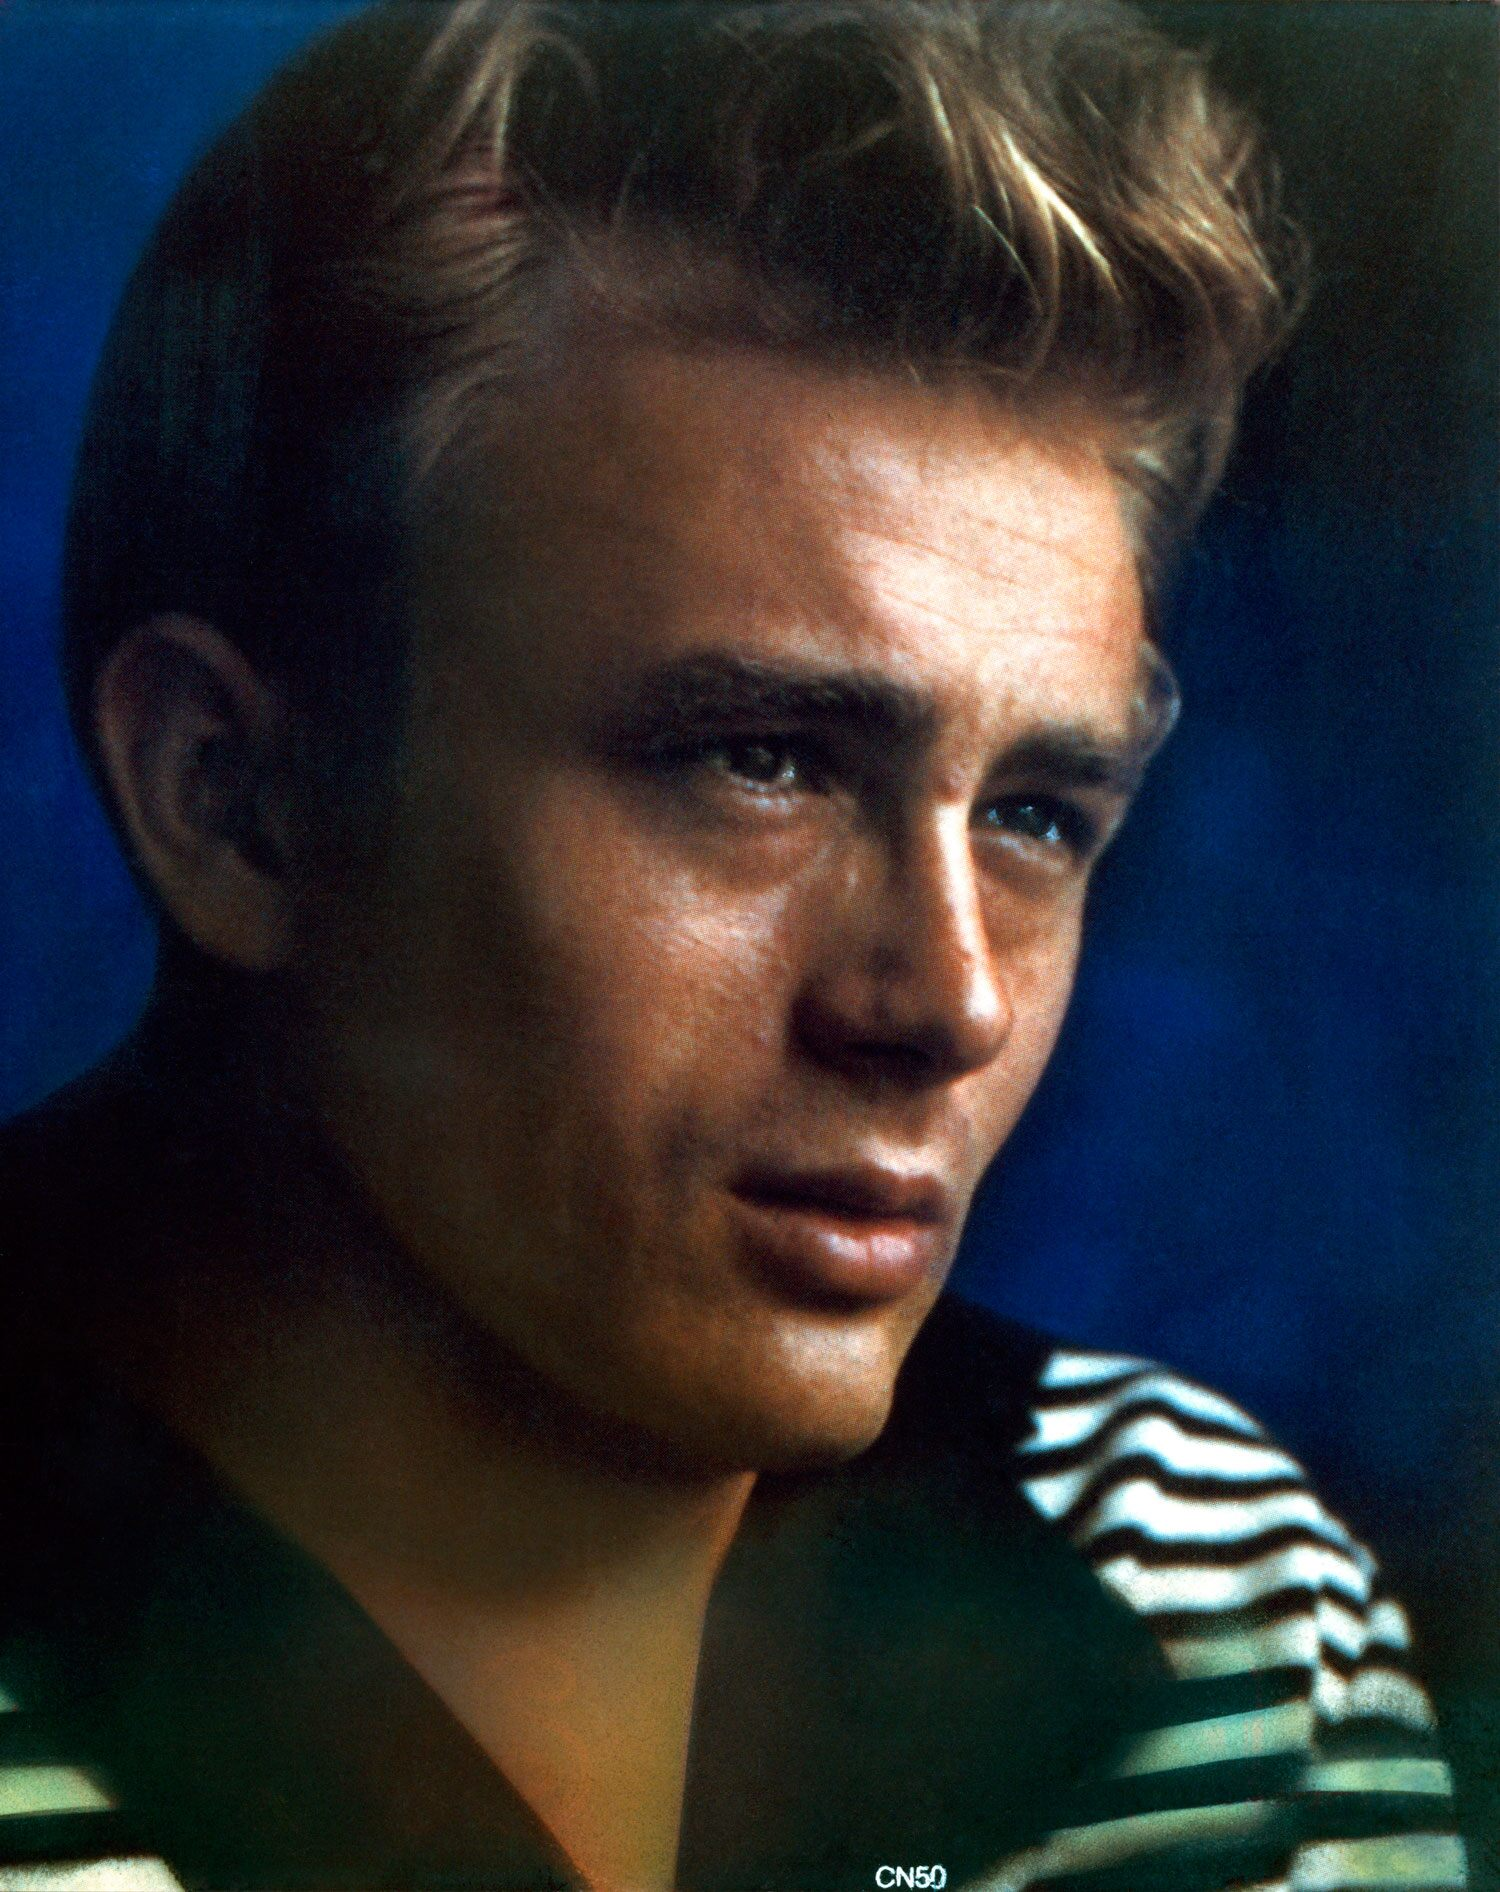 This color promotional portrait of James Dean is one of the many images that made him a familiar face for future generations.